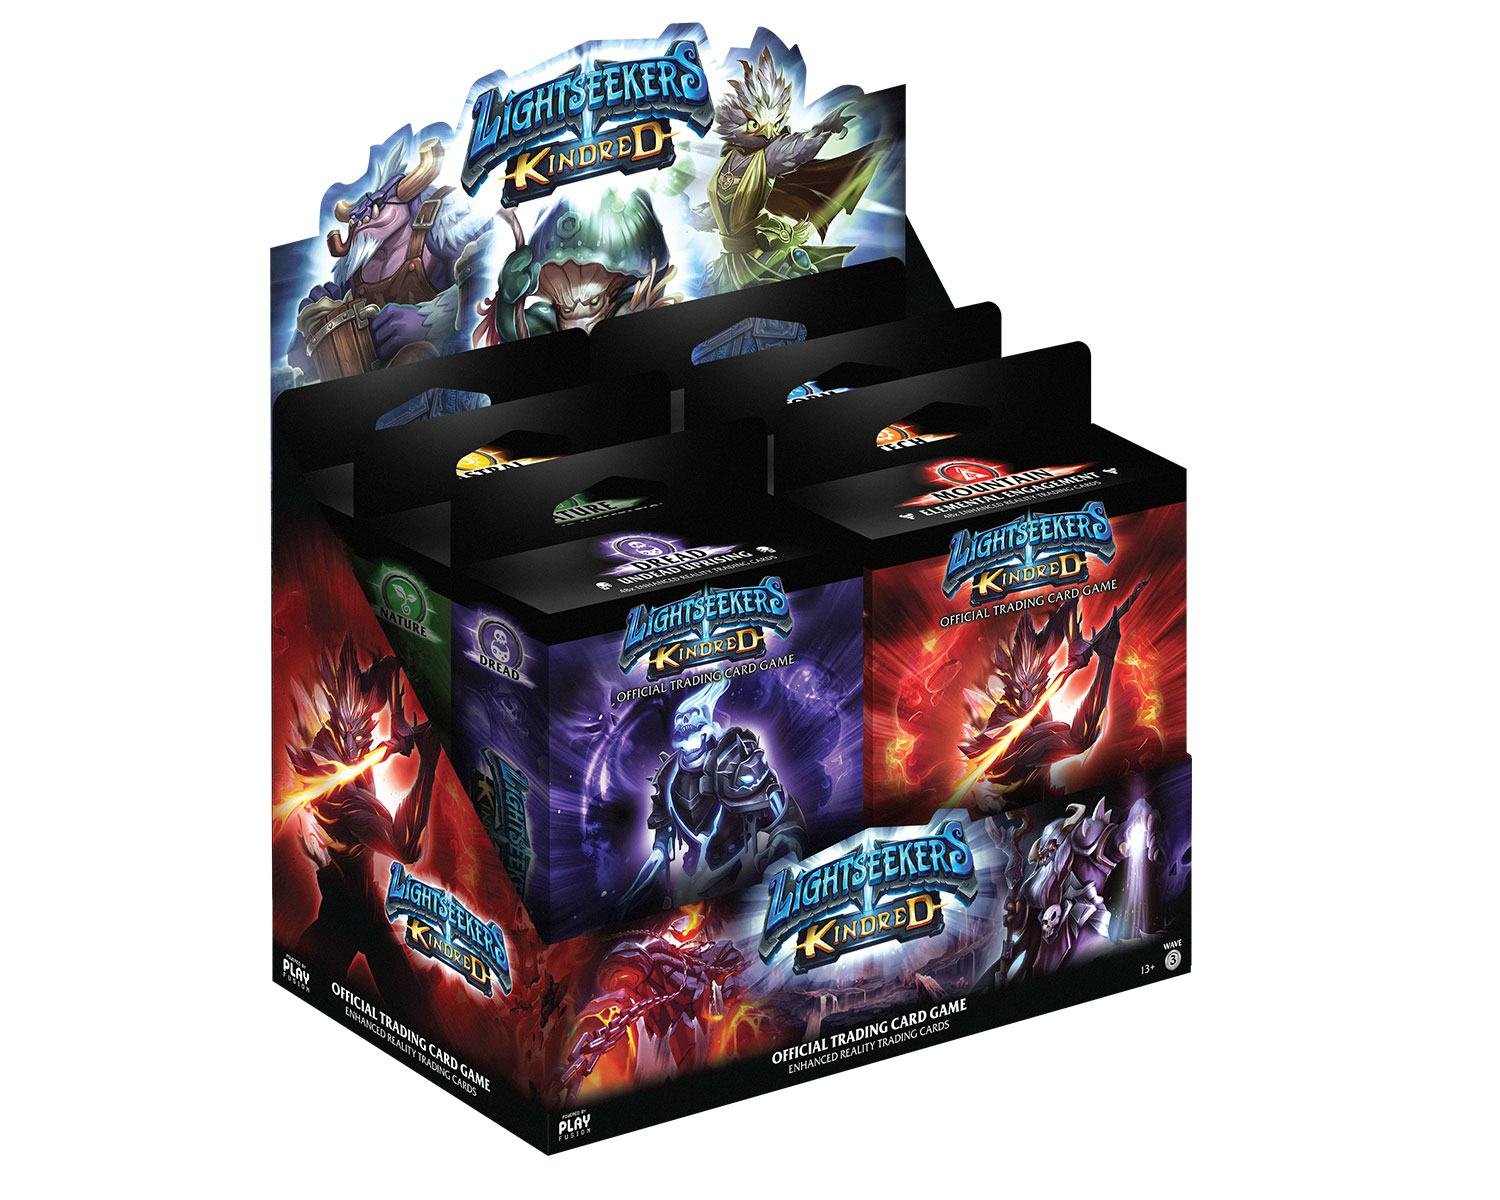 Lightseekers TCG Starter Deck Assortment Wave 3 Kindred (6) *English Version*